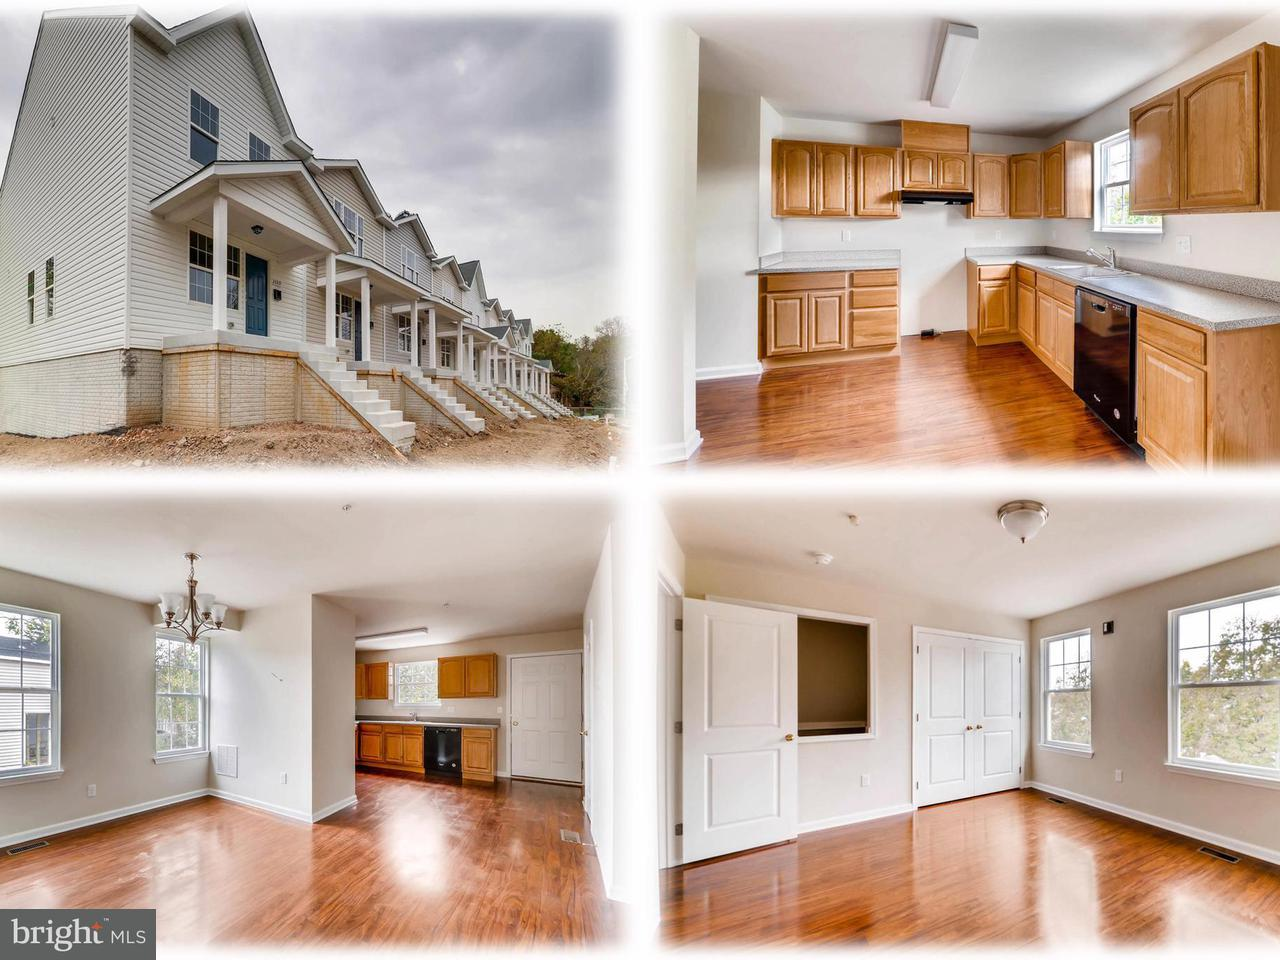 Single Family for Sale at 2625 Huron St Baltimore, Maryland 21230 United States